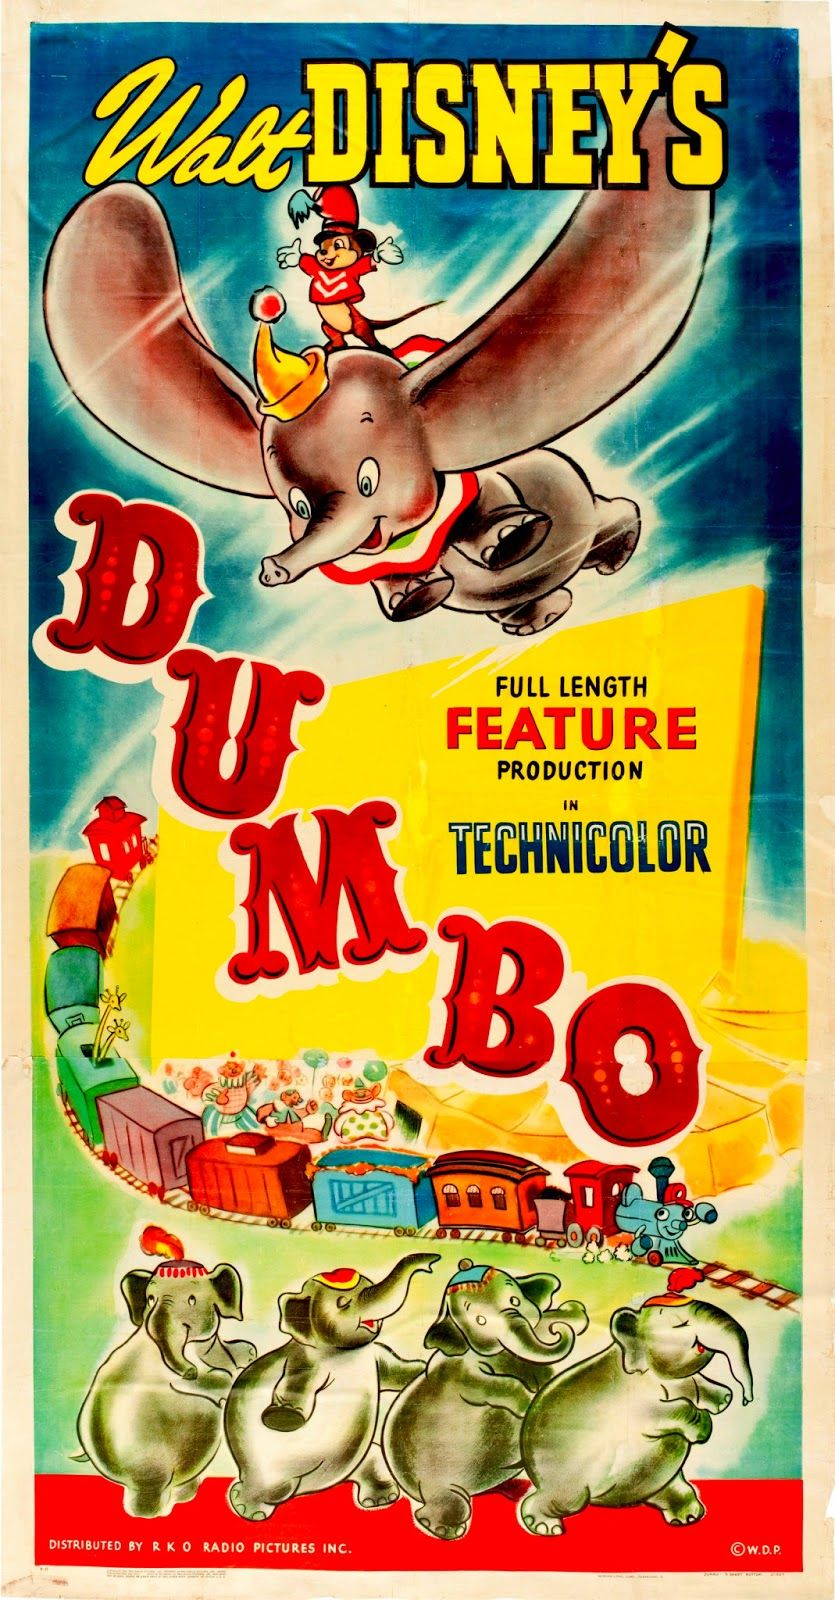 dumbo movie poster walt disney rare hot vintage 2 alte filme poster und film. Black Bedroom Furniture Sets. Home Design Ideas